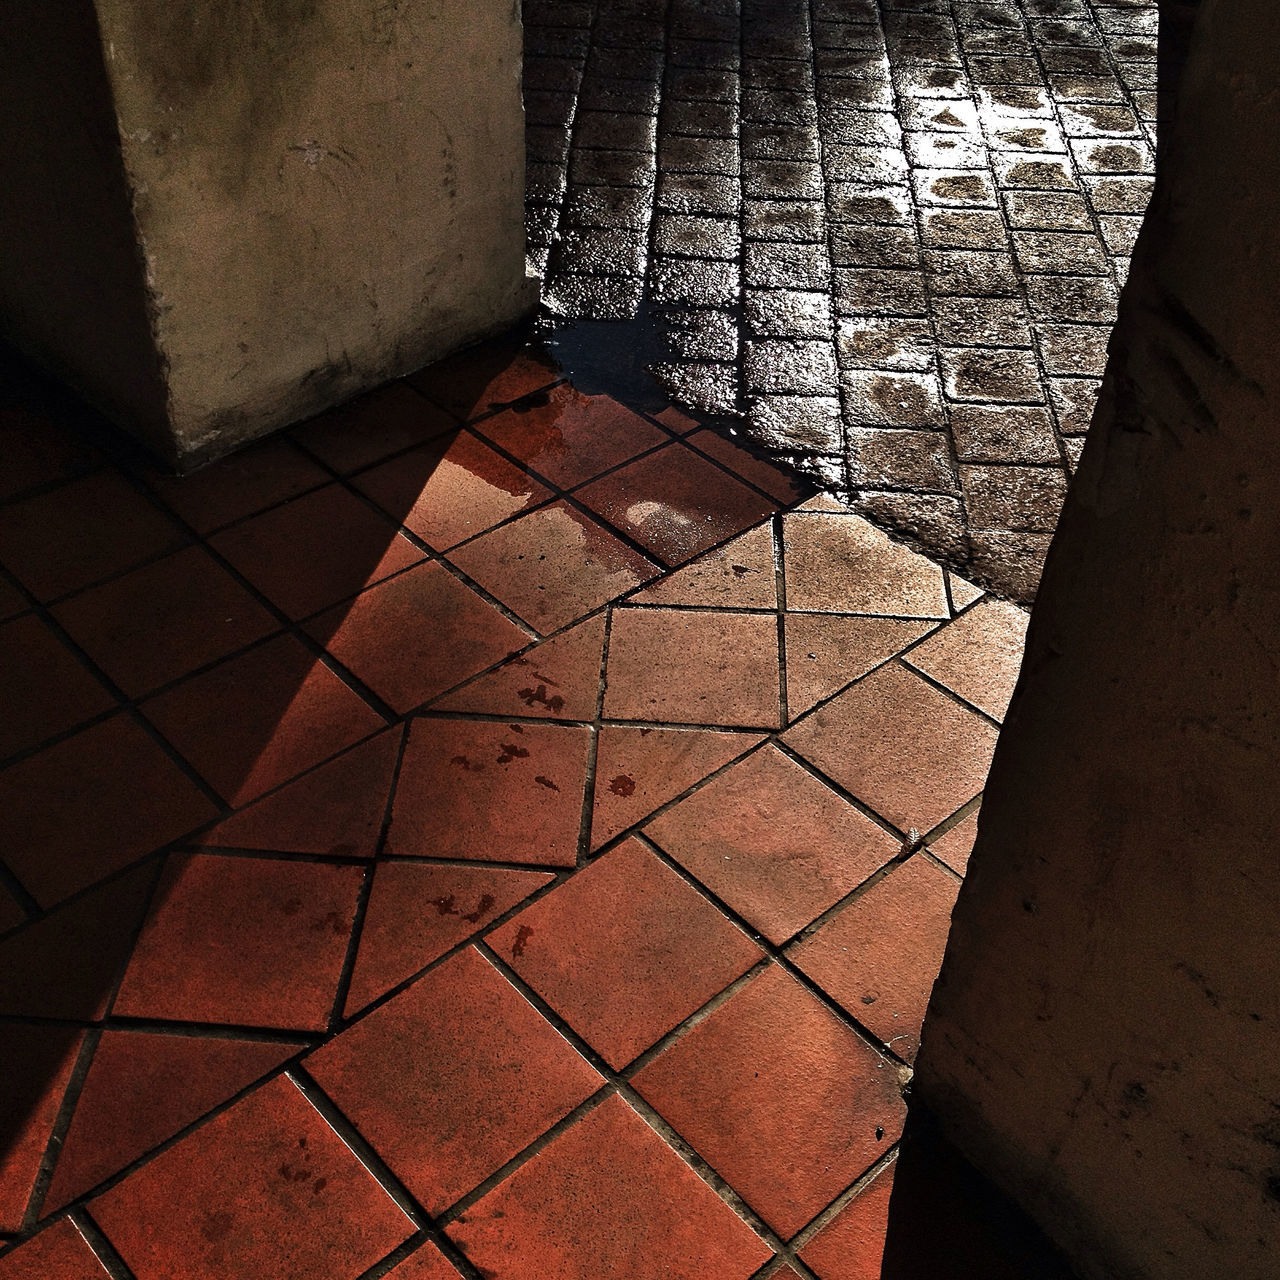 tiled floor, indoors, no people, day, shadow, architecture, close-up